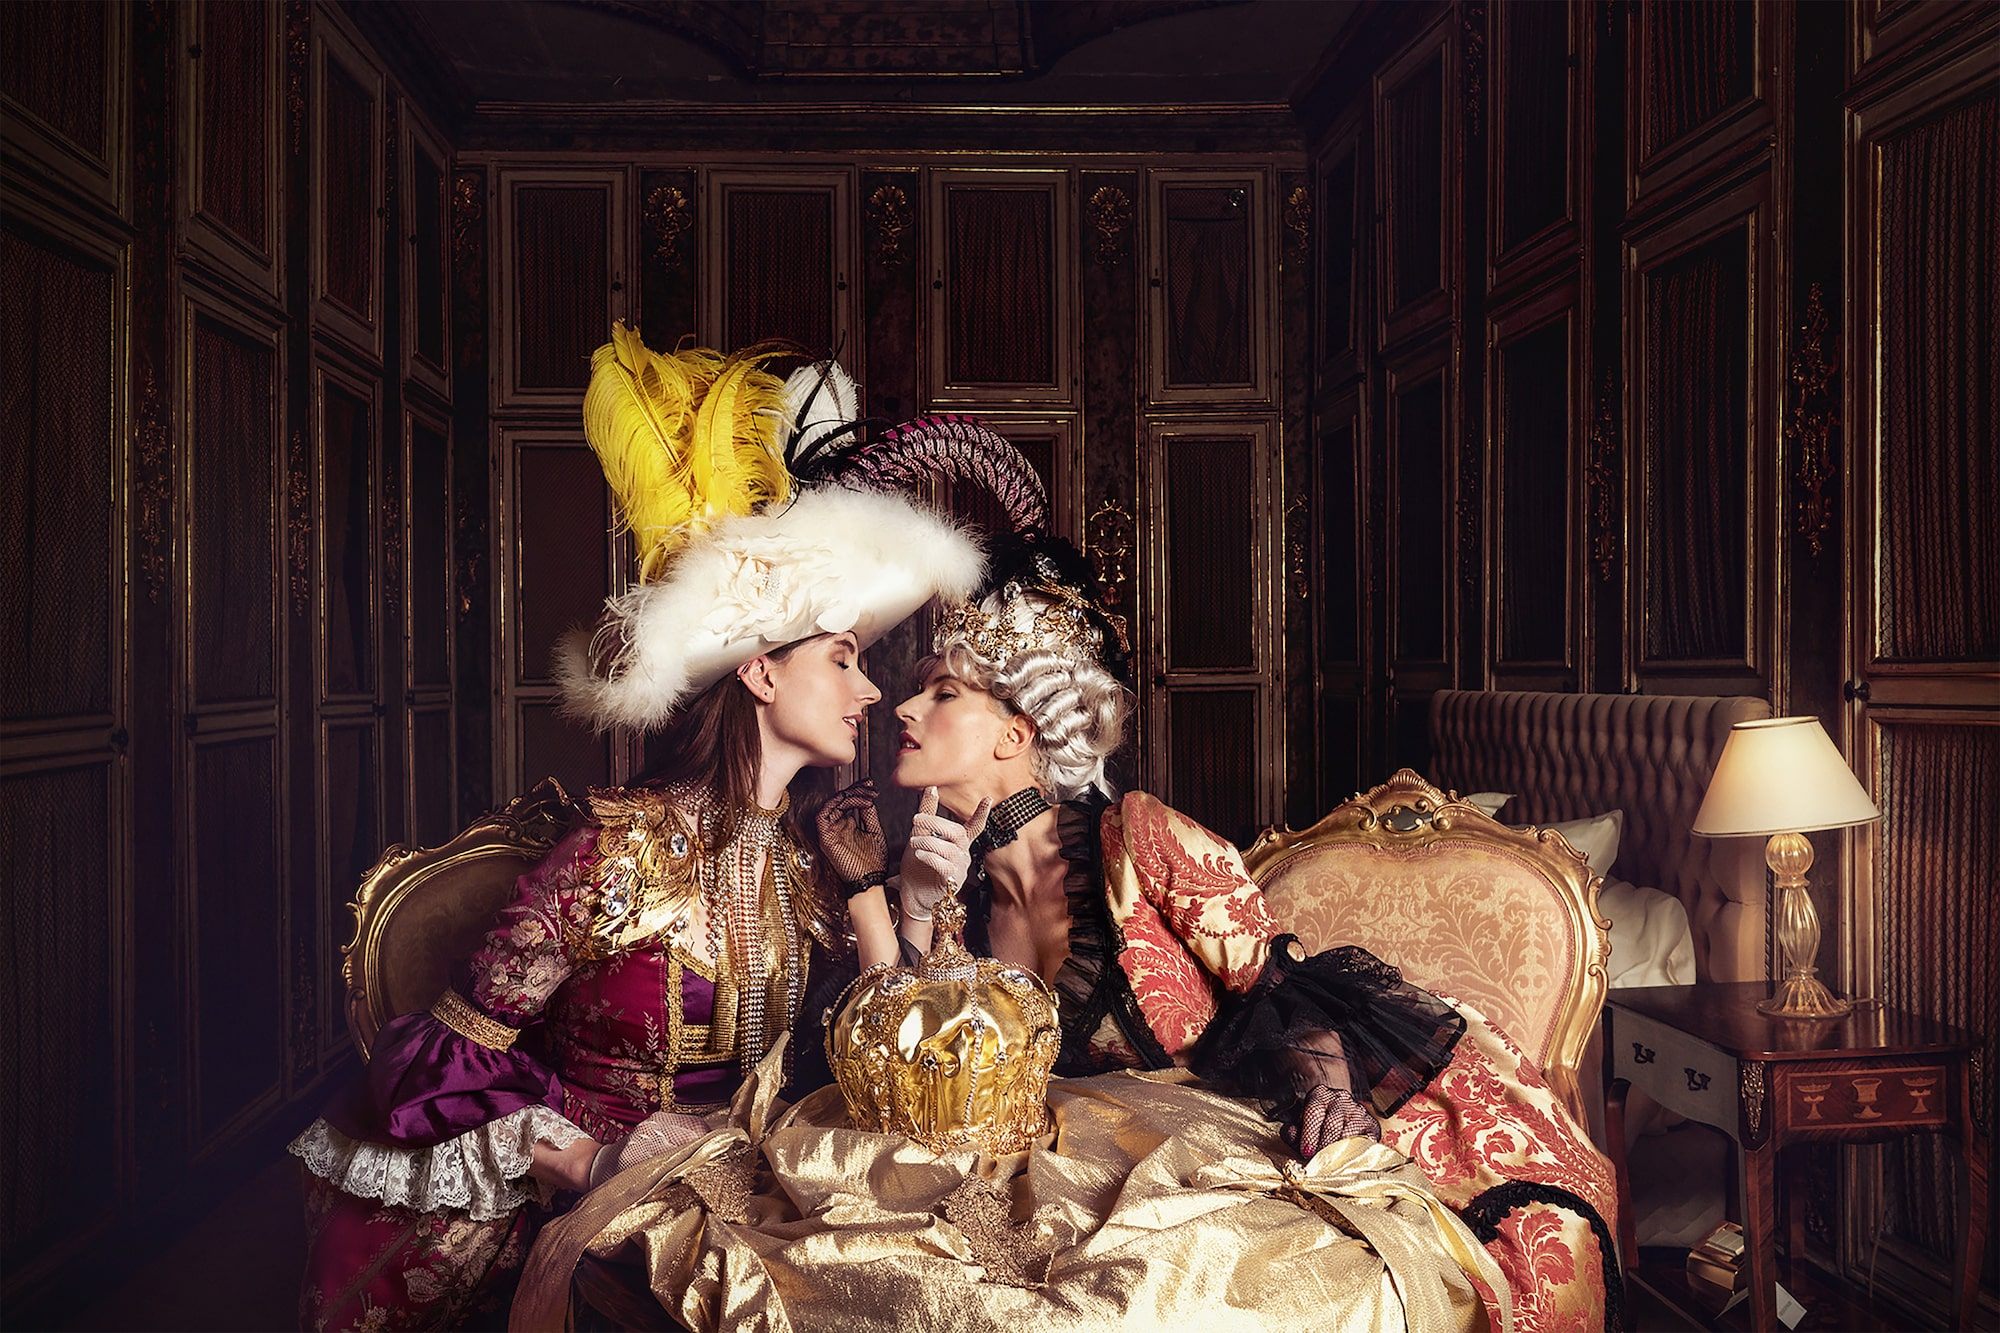 mathias kniepeiss sony alpha 7RIII 2 models dressed in venetian costume pretend to kiss